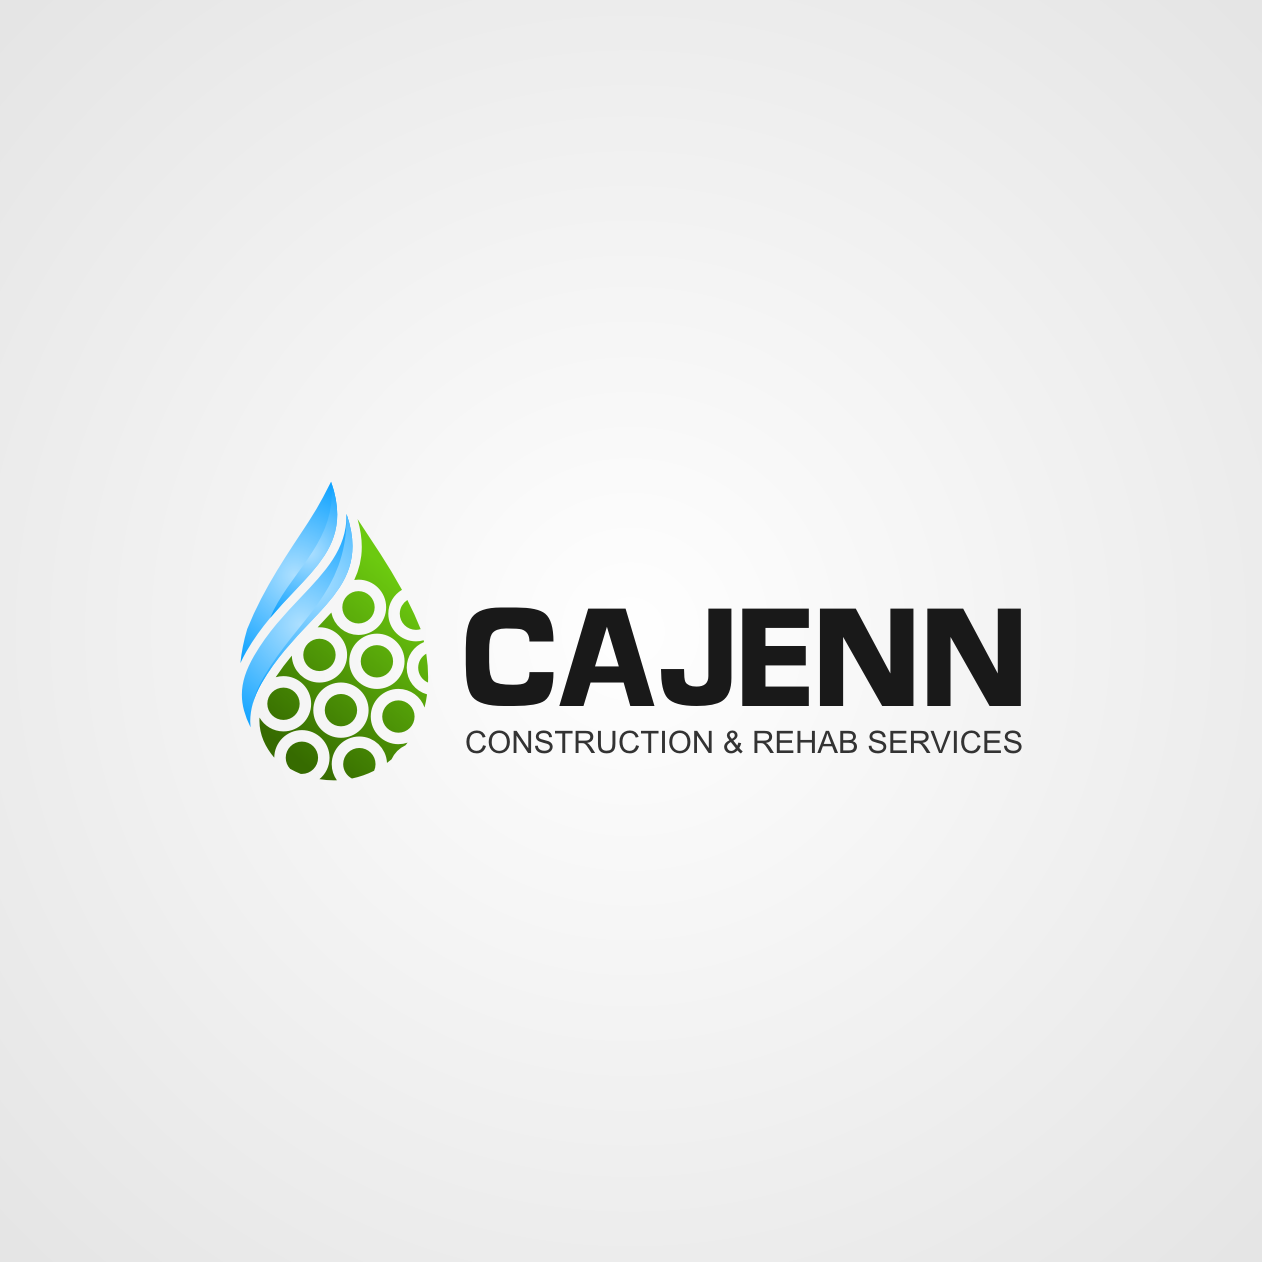 Logo Design by rifatz - Entry No. 155 in the Logo Design Contest New Logo Design for CaJenn Construction & Rehab Services.